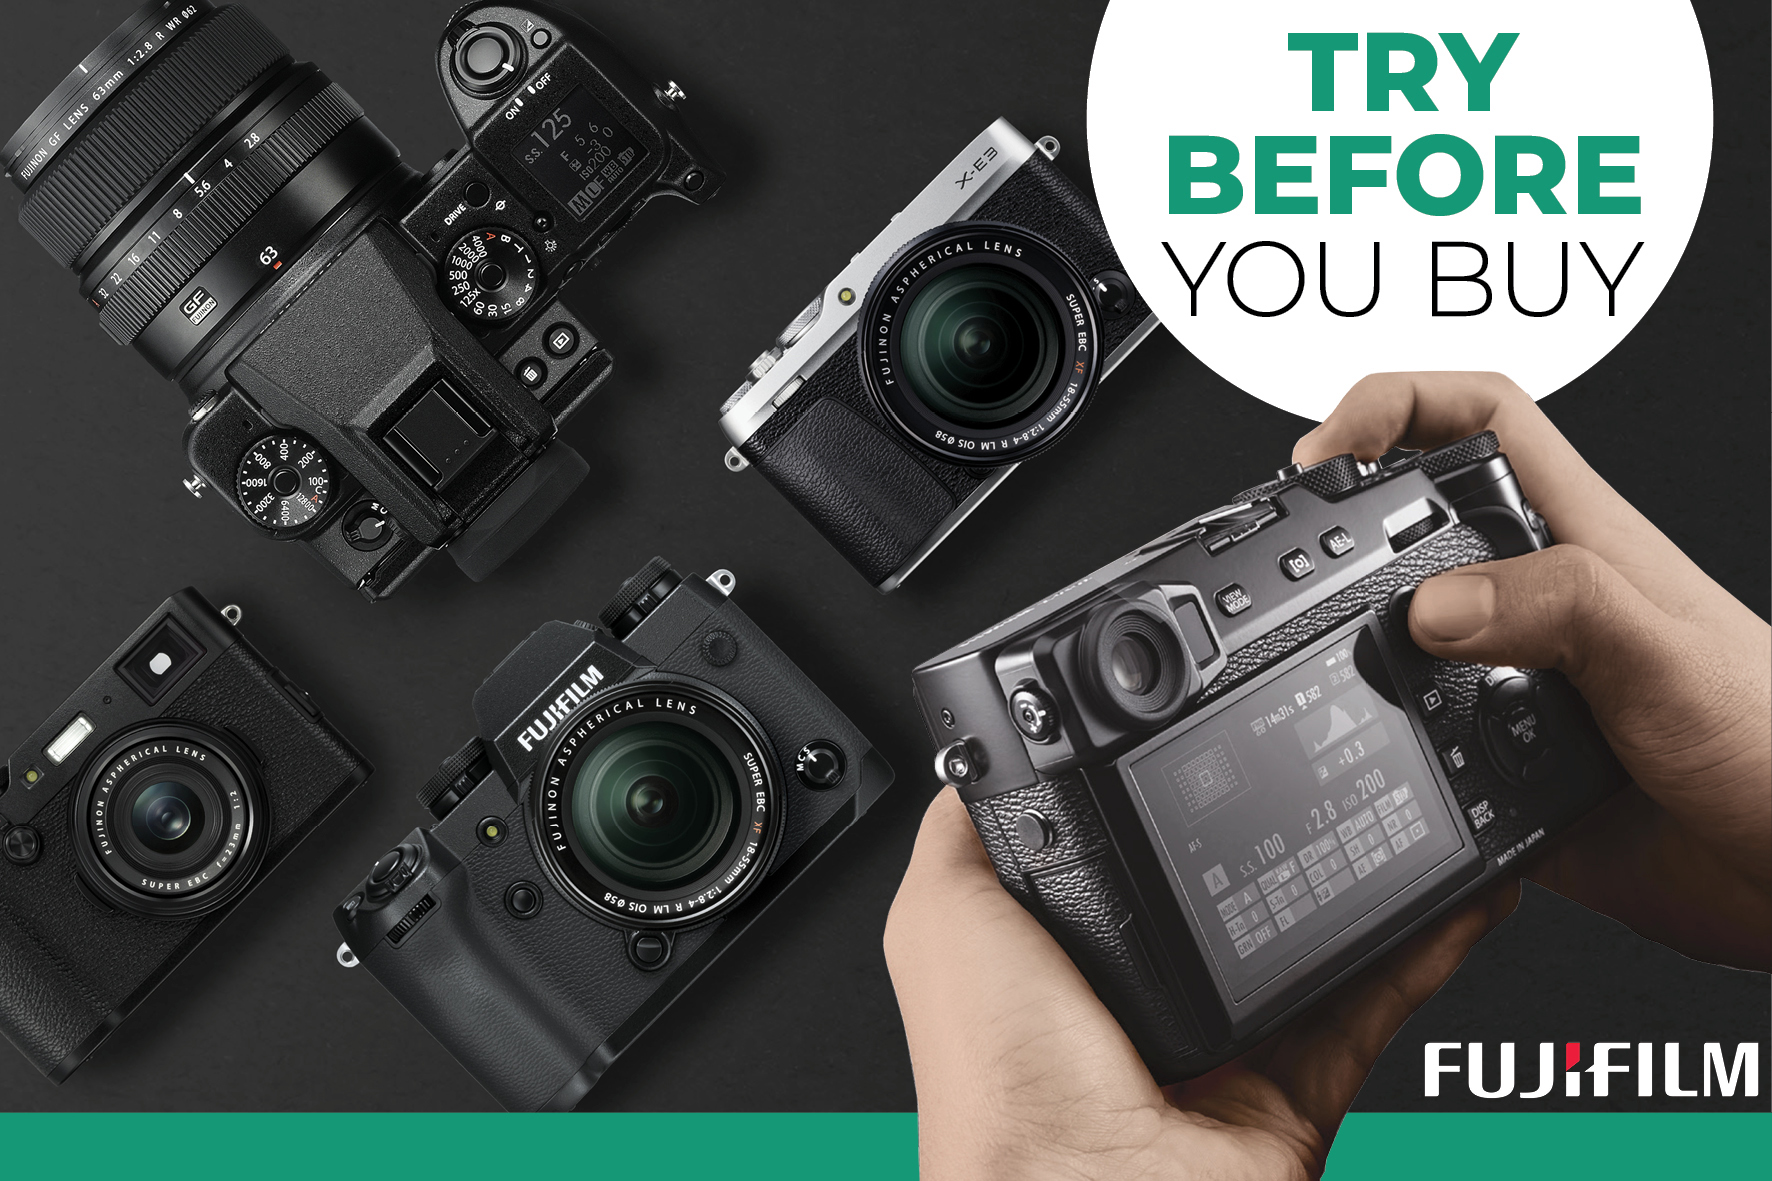 Hireacamera and Fujifilm launch Nationwide Try Before You Buy Initiative